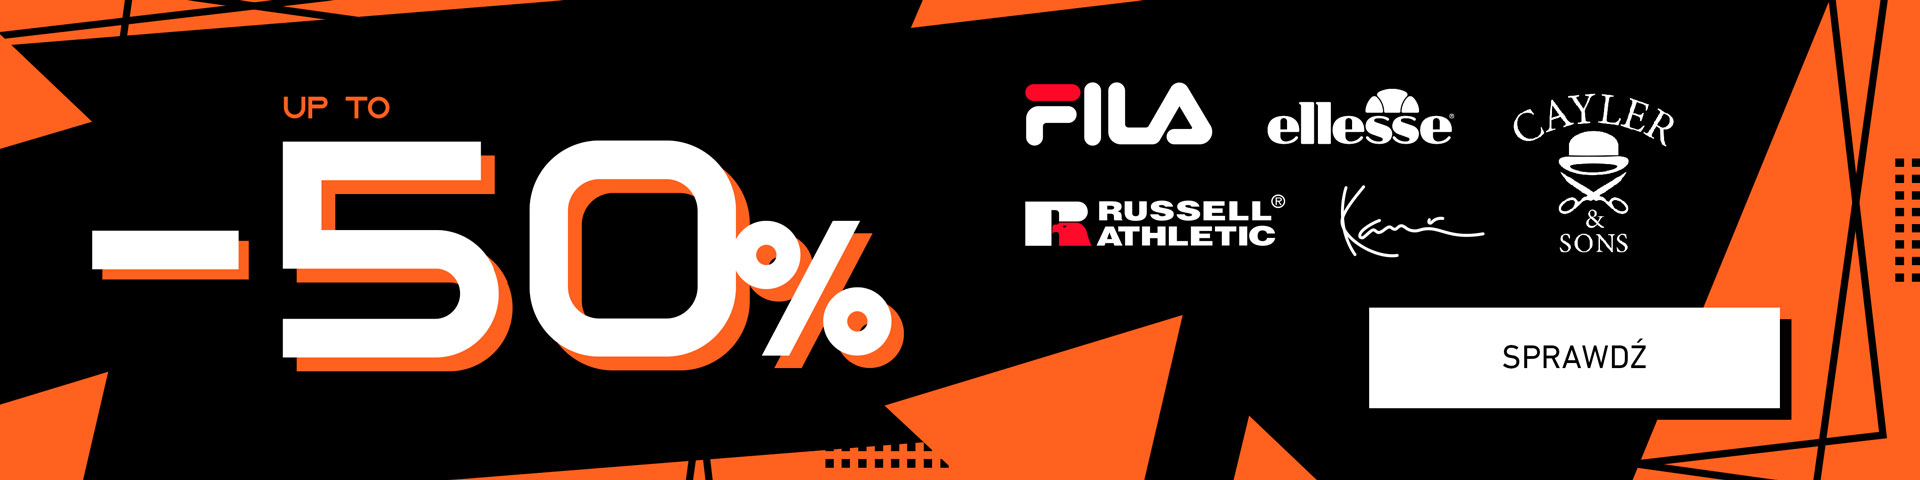 Fila, Russell Athletic, Cayler & Sons, Karl Kani i Ellesse do -50%